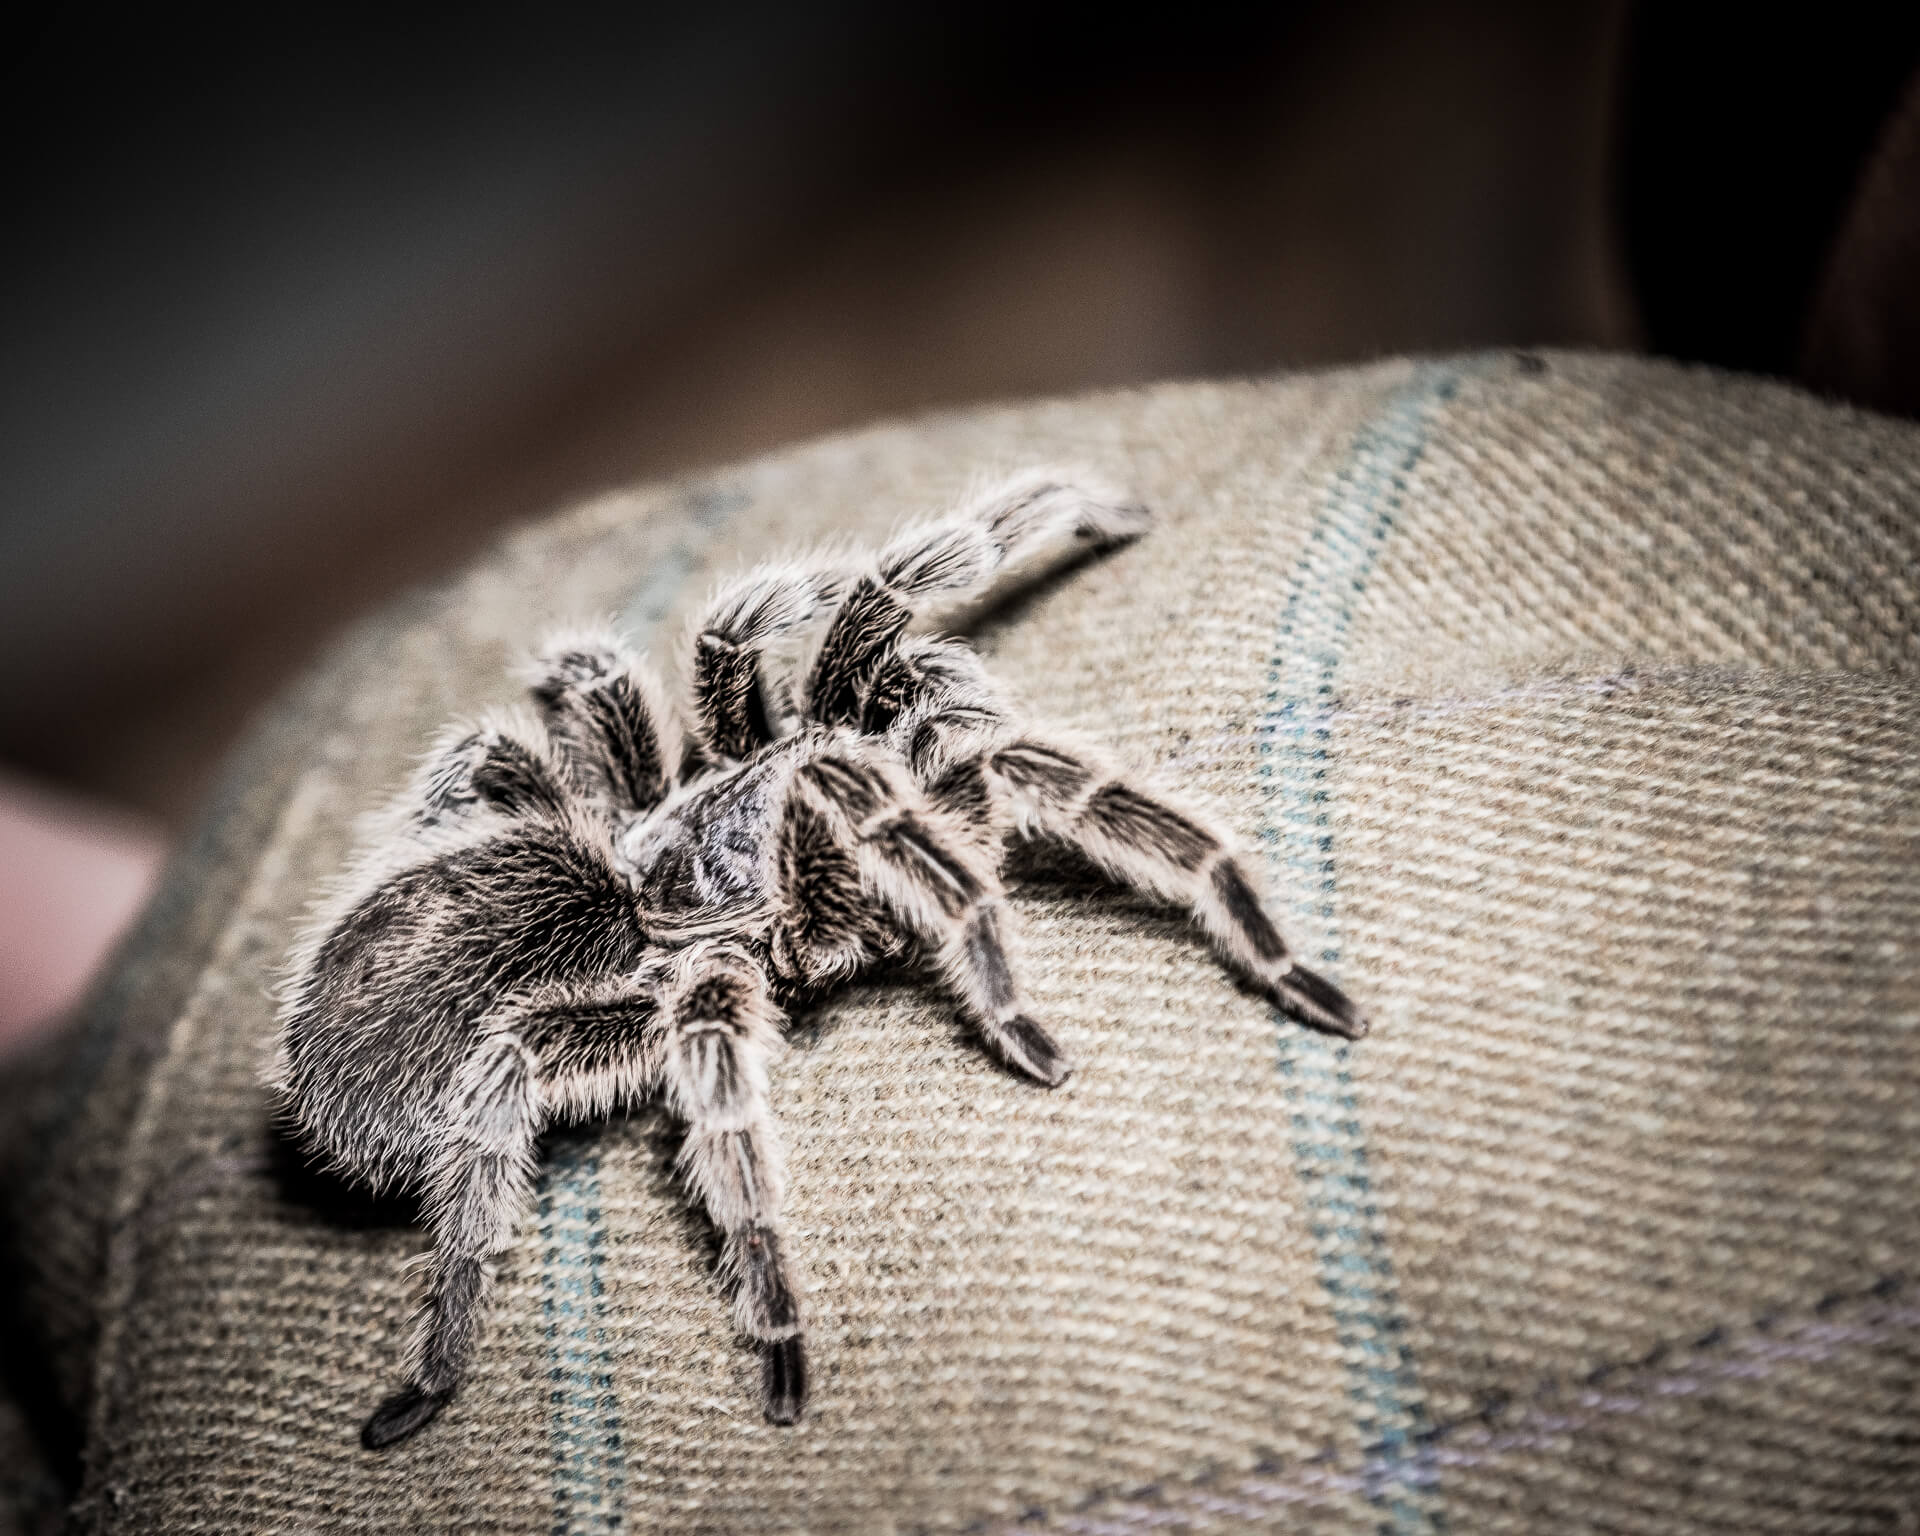 A close up coloured image of a tarantula spider as it walks up and onto the shoulder of a Gentleman at the Game Show at the 3 Counties Showground, Malvern.